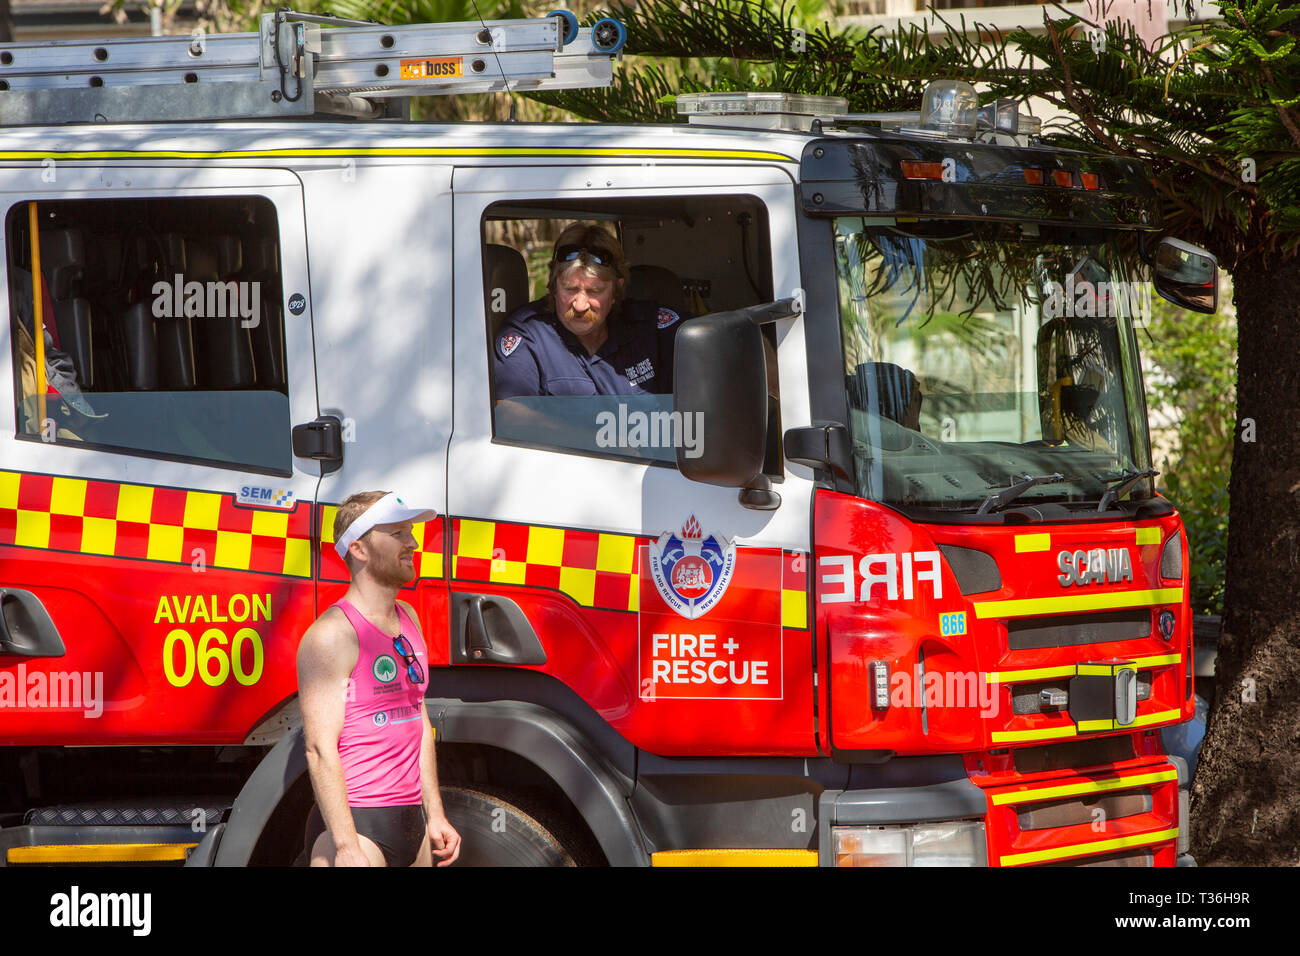 New South Wales Fire Brigade Stock Photos & New South Wales